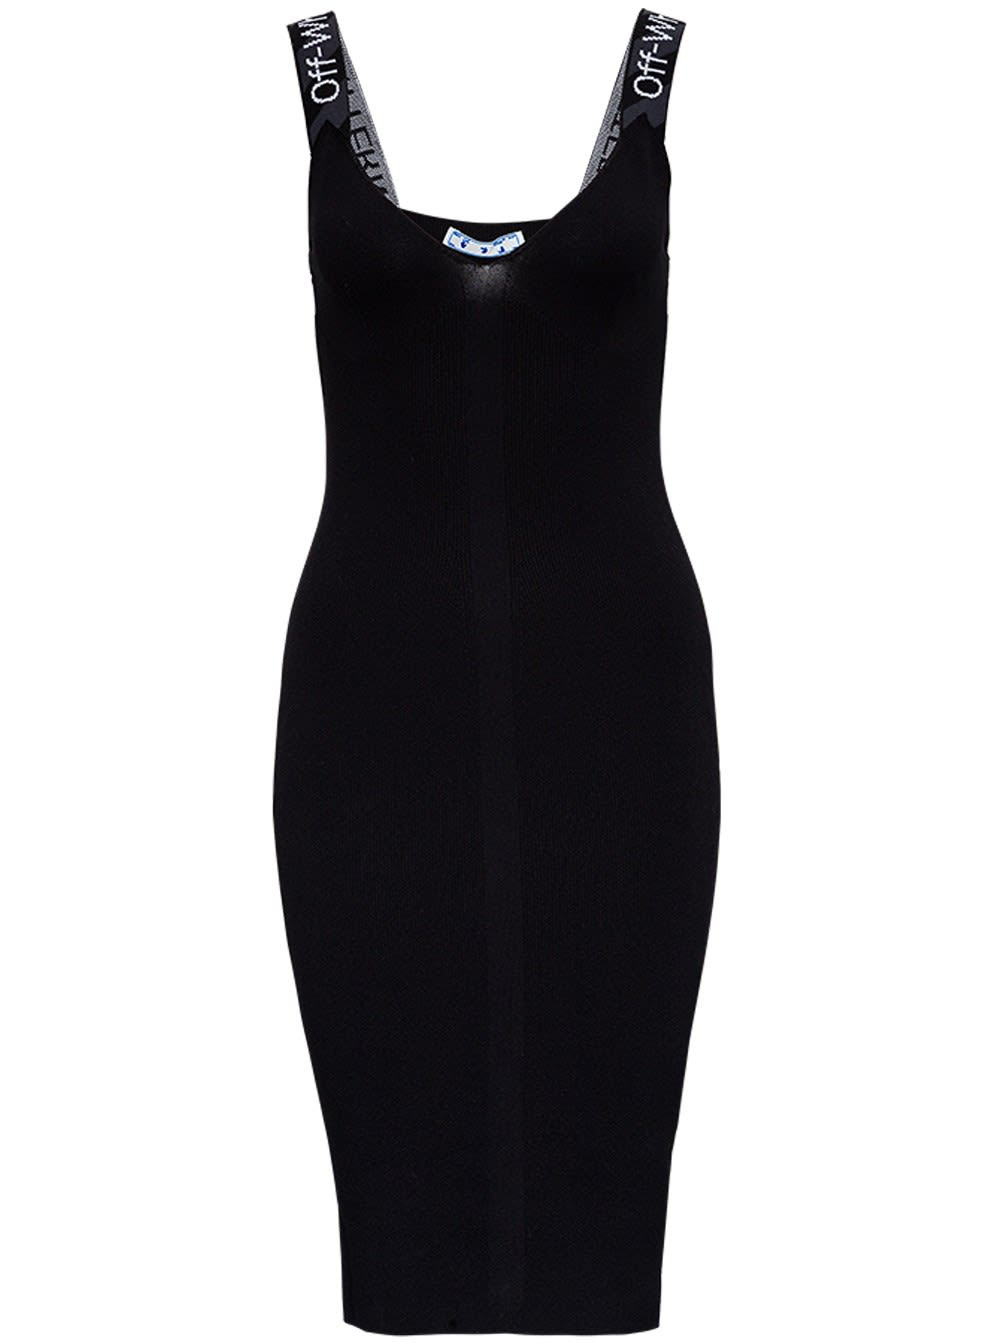 Buy Off-White Tight-fitting Dress With Logoed Straps online, shop Off-White with free shipping